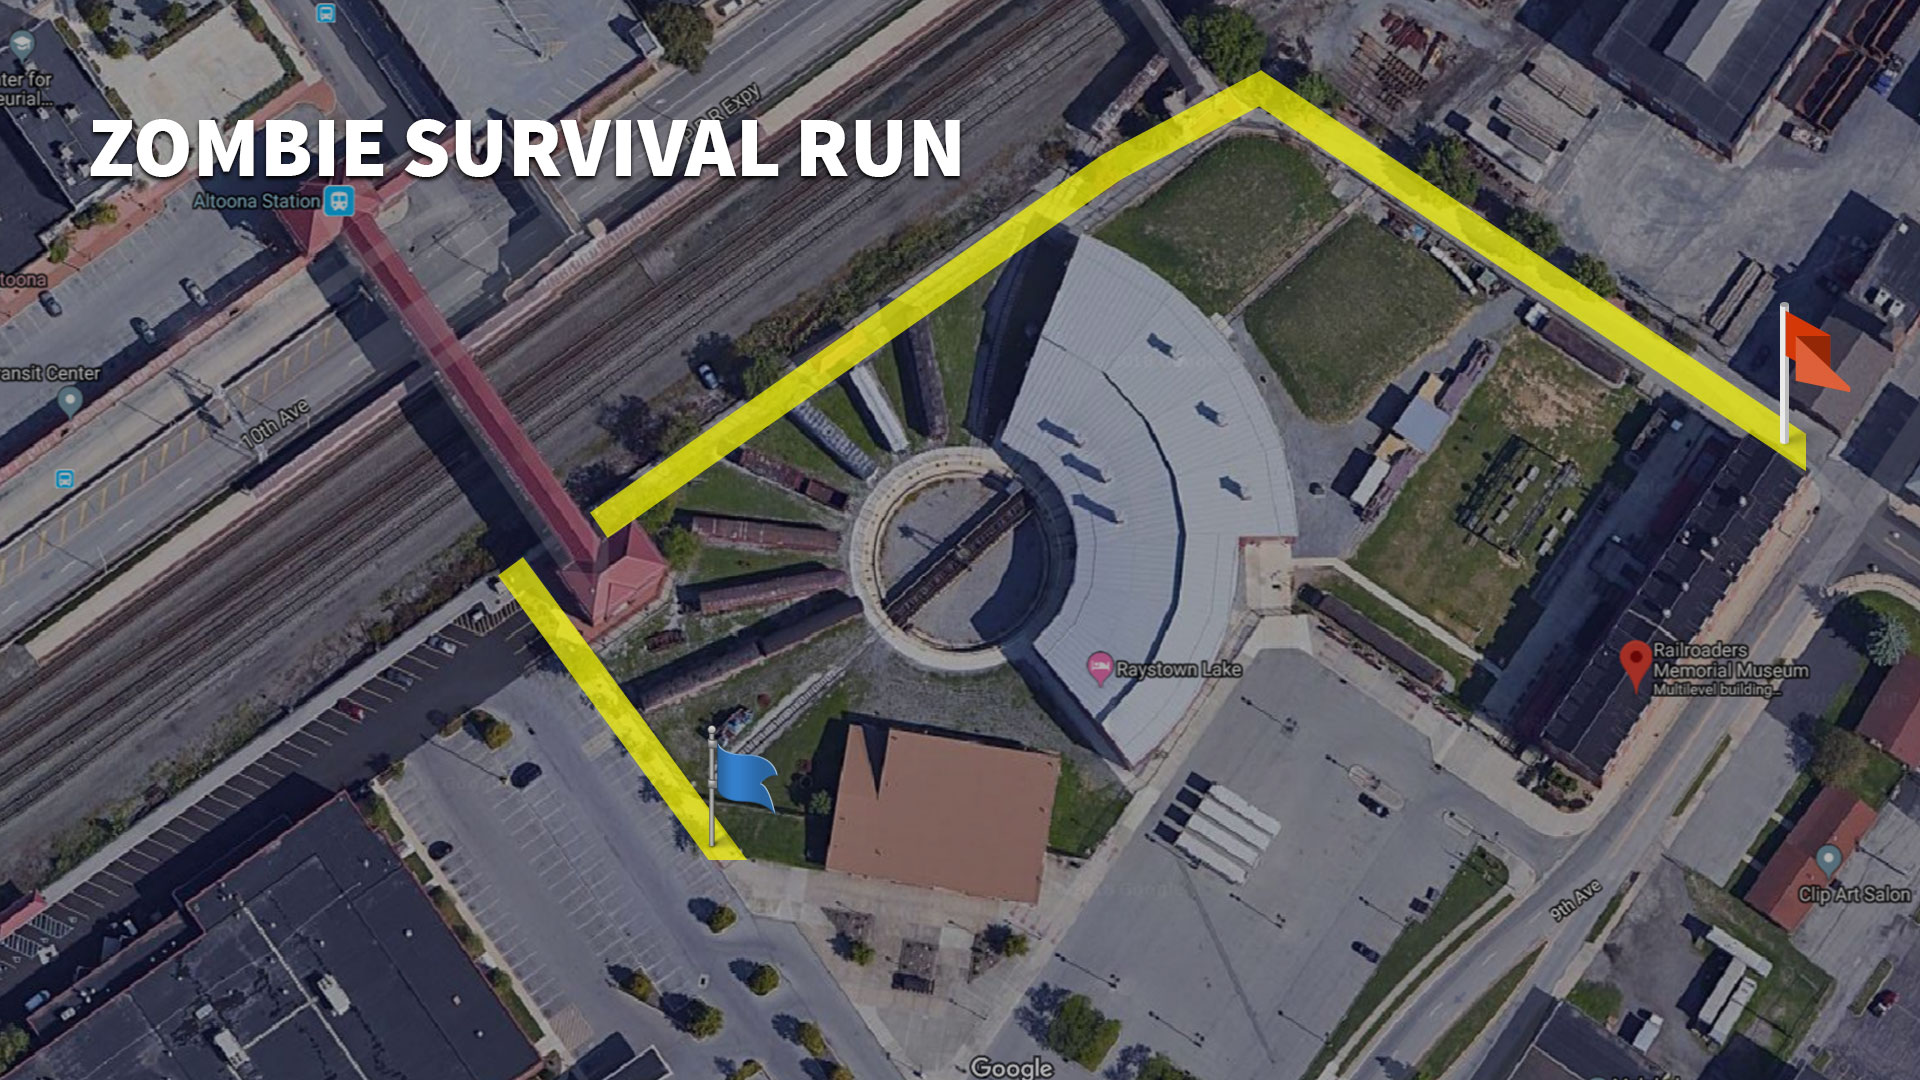 Zombie Survival Run